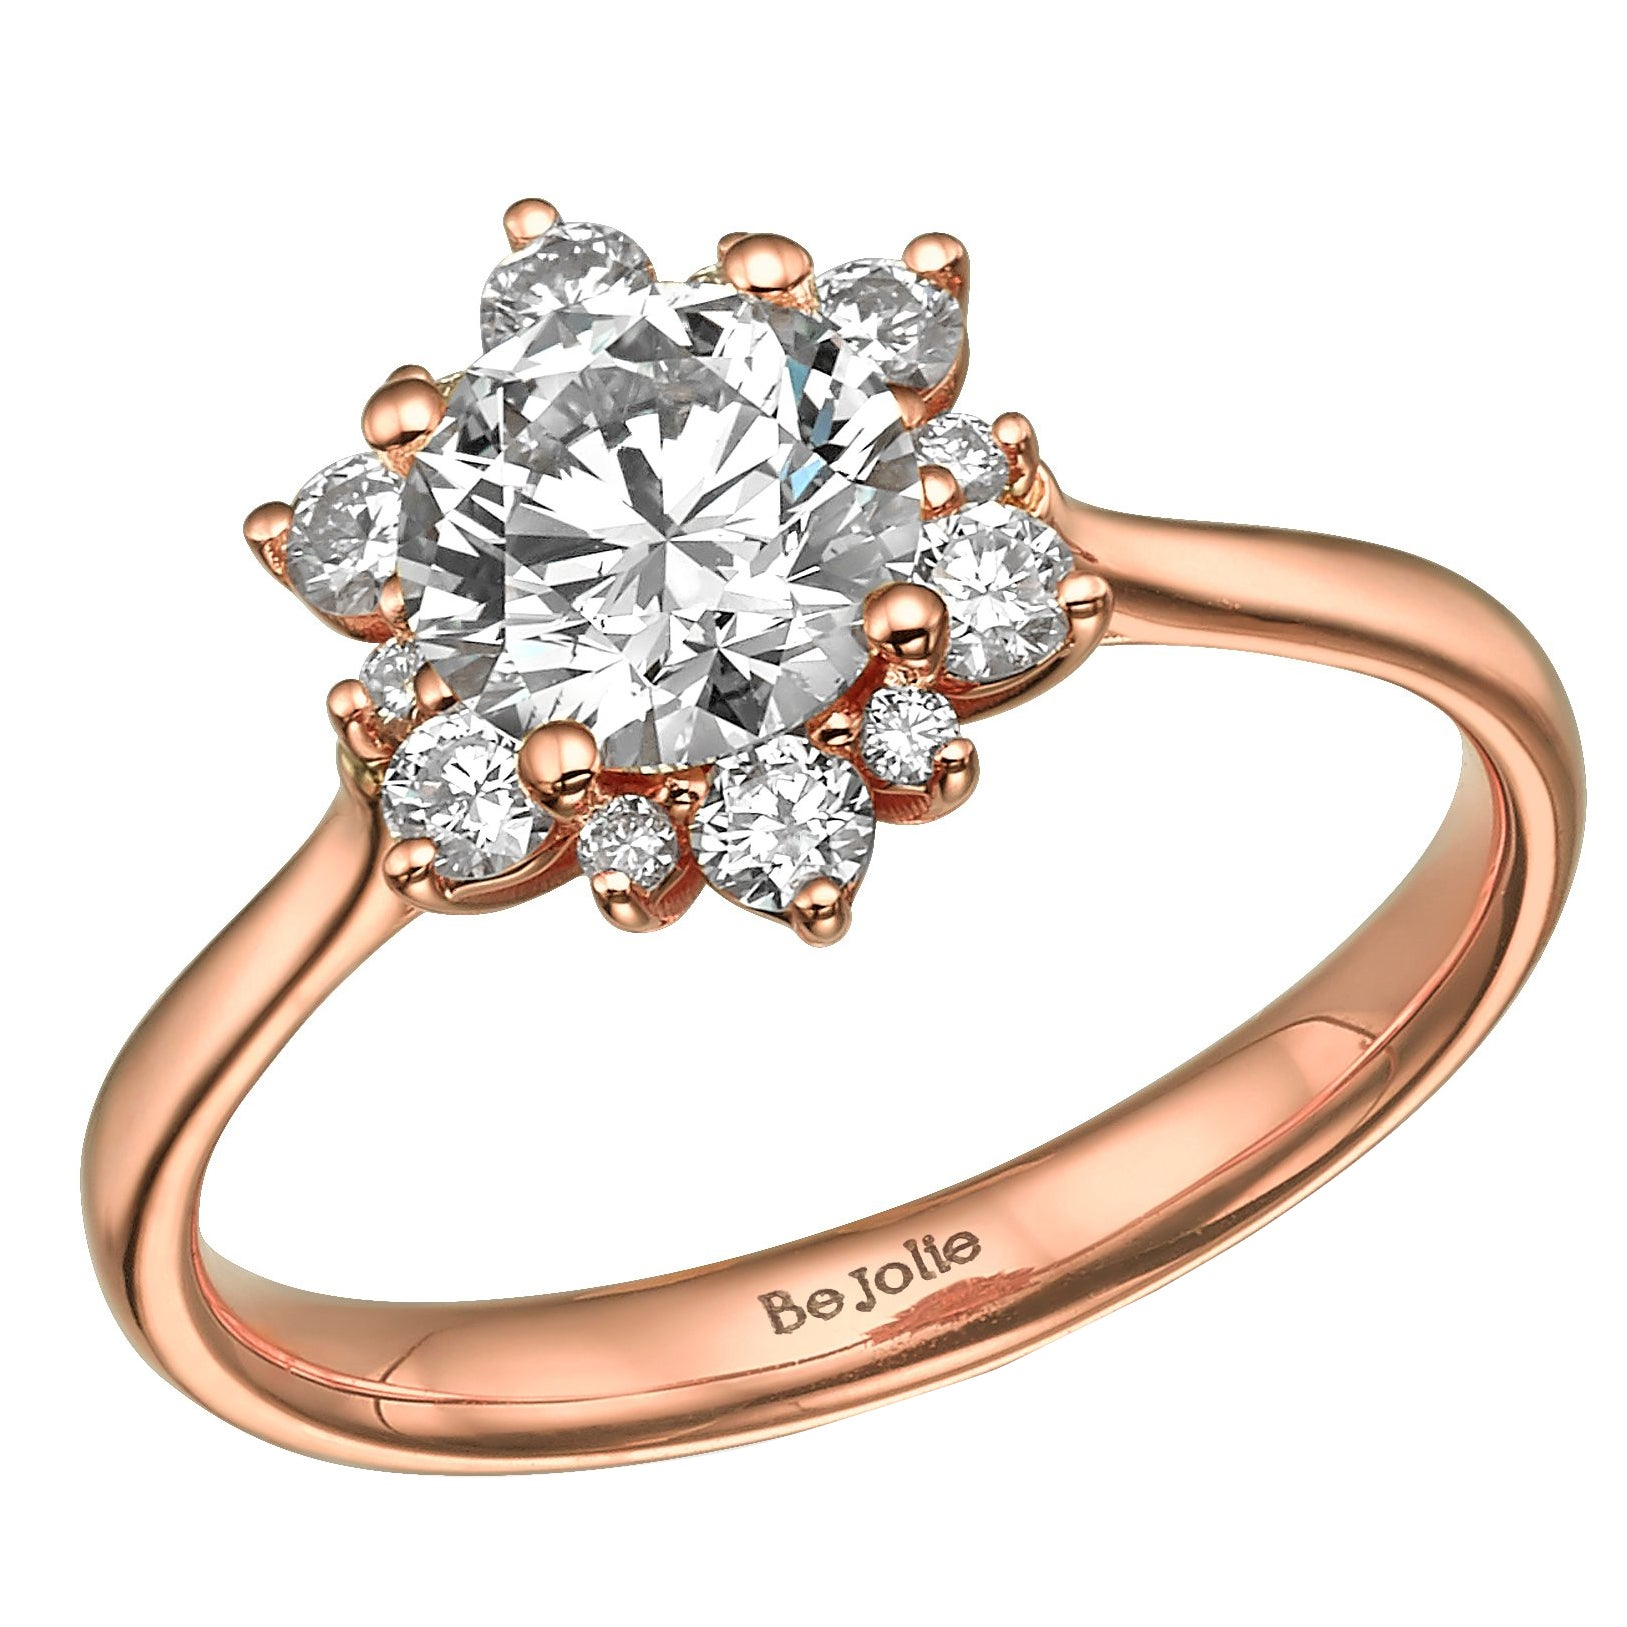 ladies occasion gold ring wedding point category number recipient ernest jewellery set channel white l diamond webstore detailed rings jones product